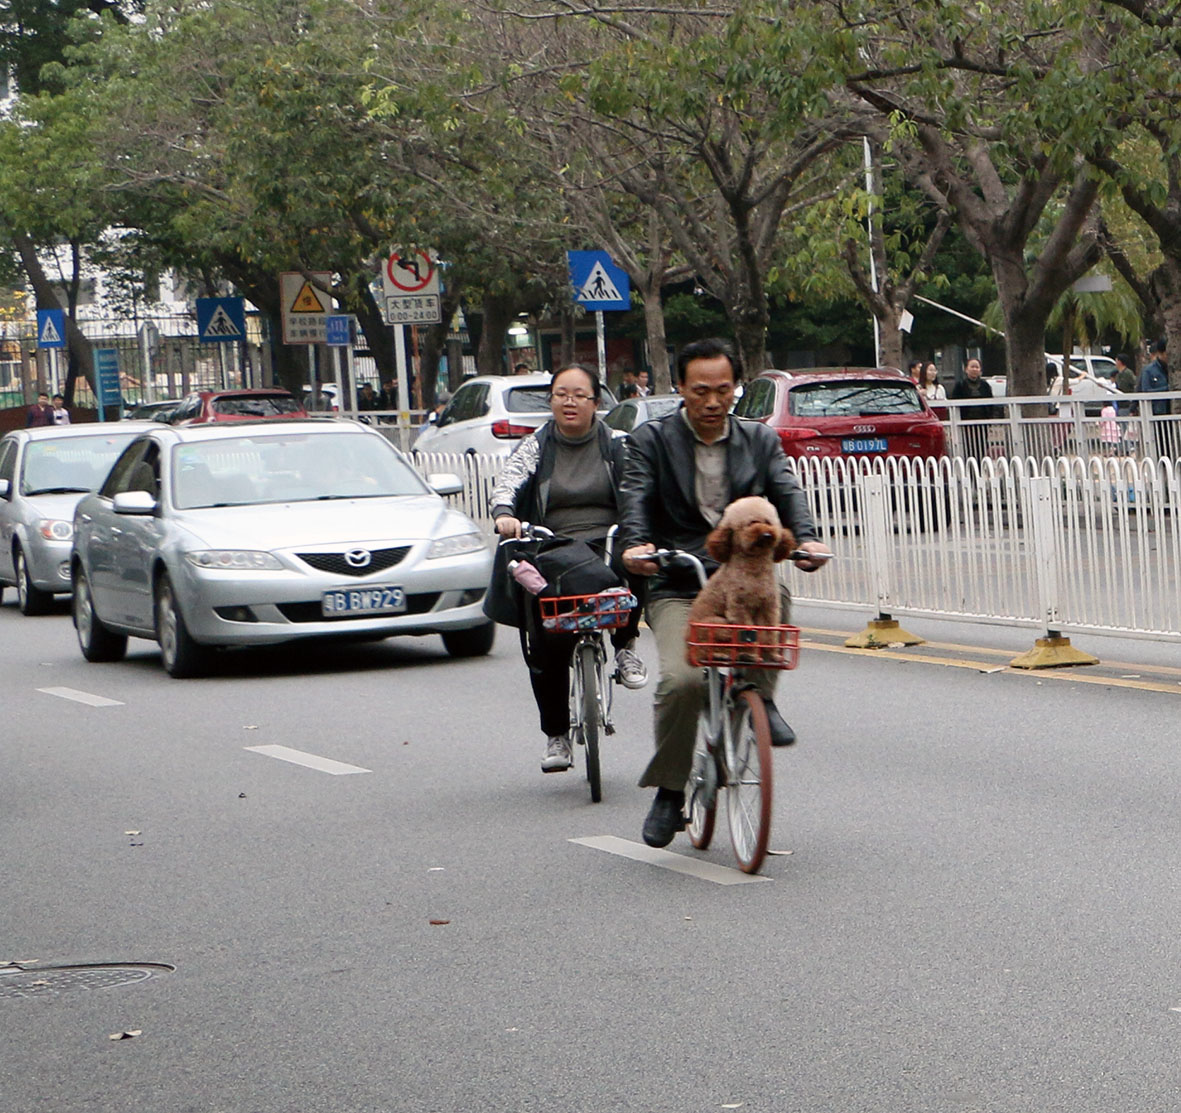 http://ubeat.com.cuhk.edu.hk/wp-content/uploads/2017/130_bicycle_dog.jpg